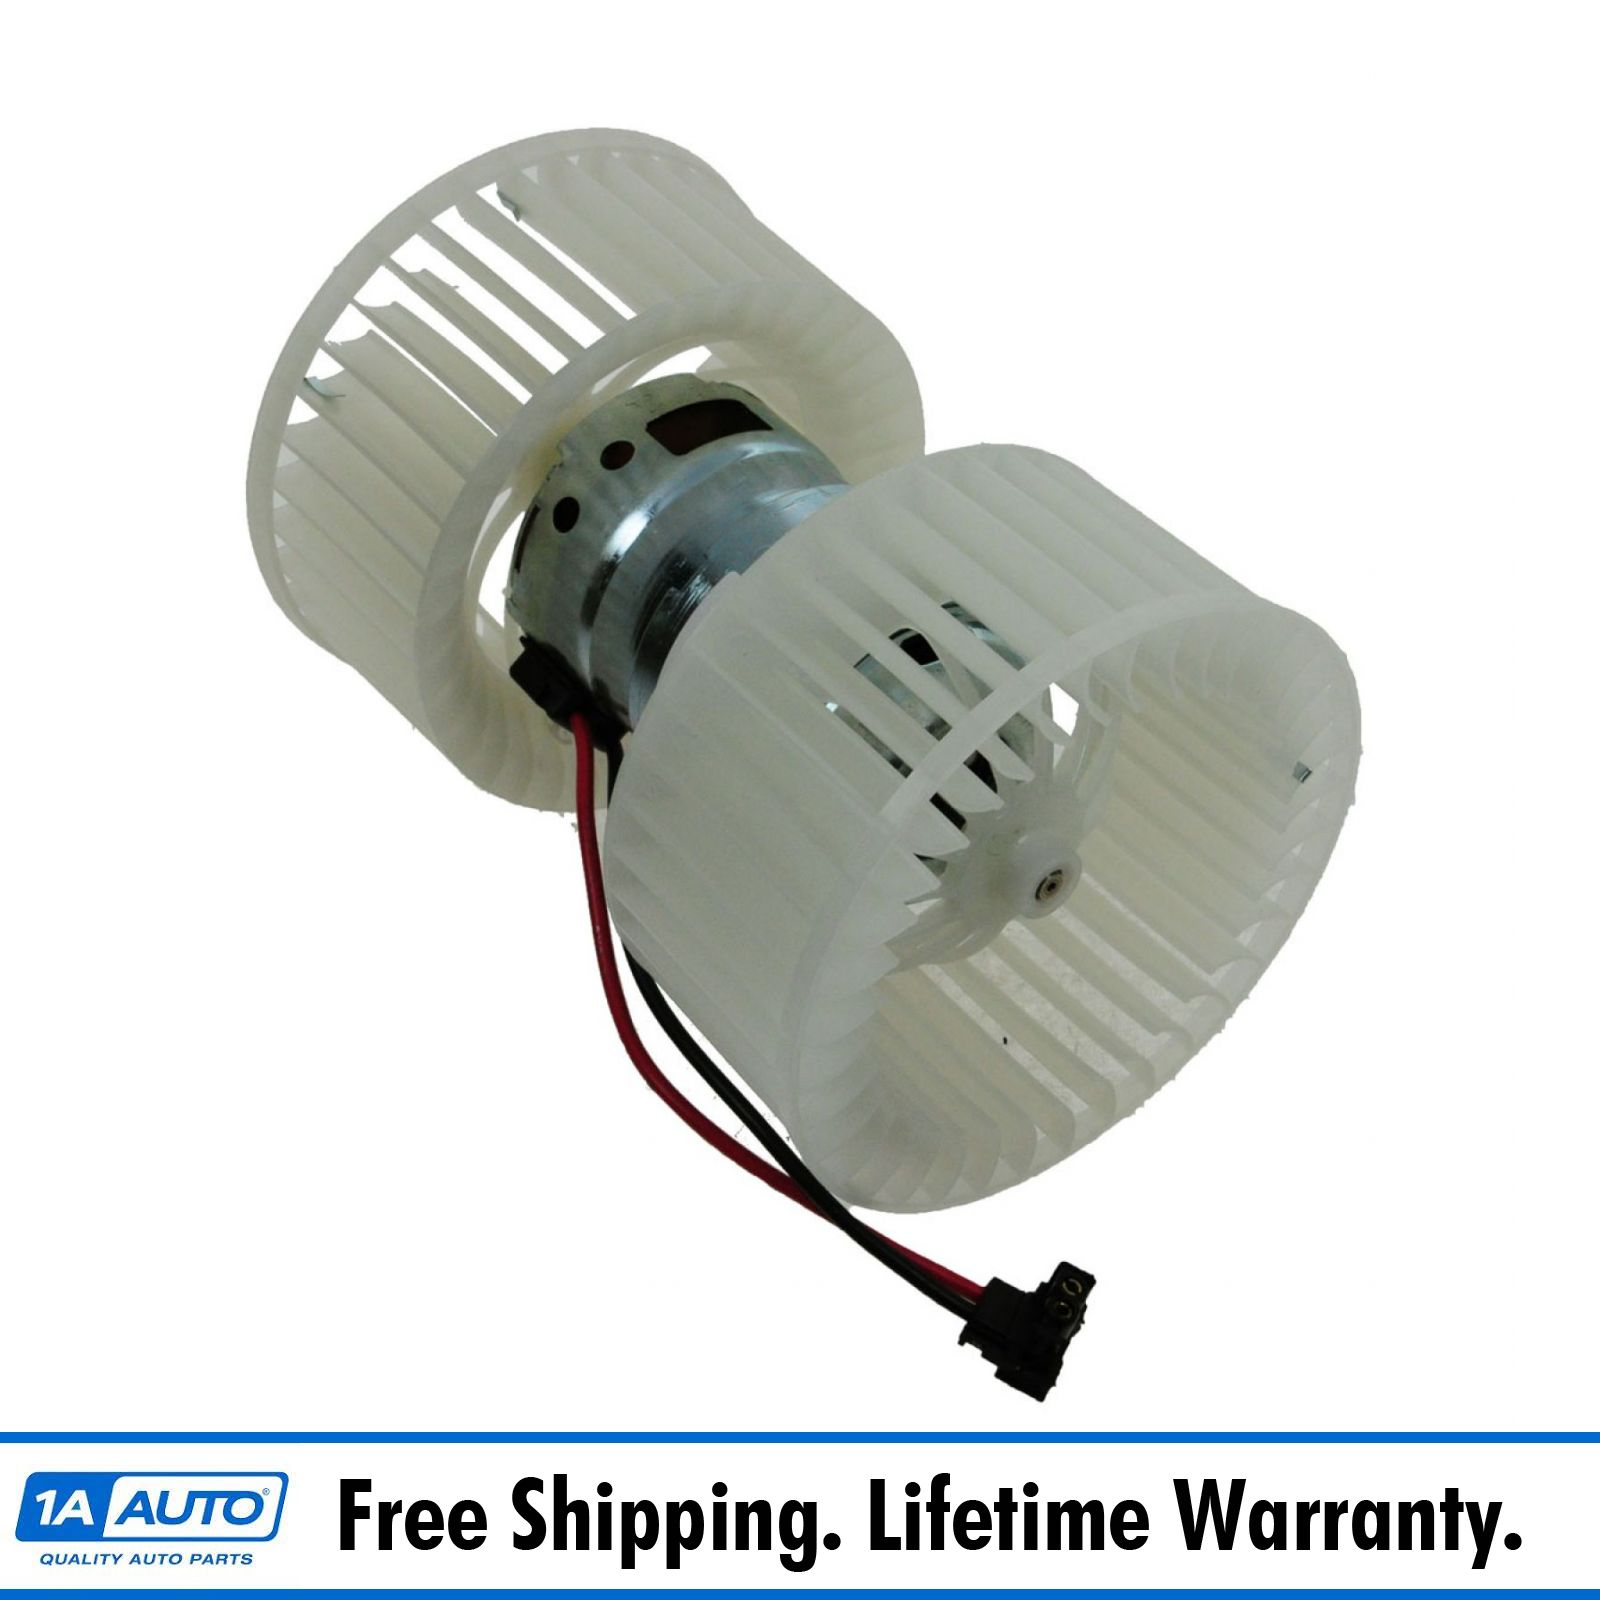 Heater A/C AC Blower Motor W/ Dual Cage Fan For BMW 330i